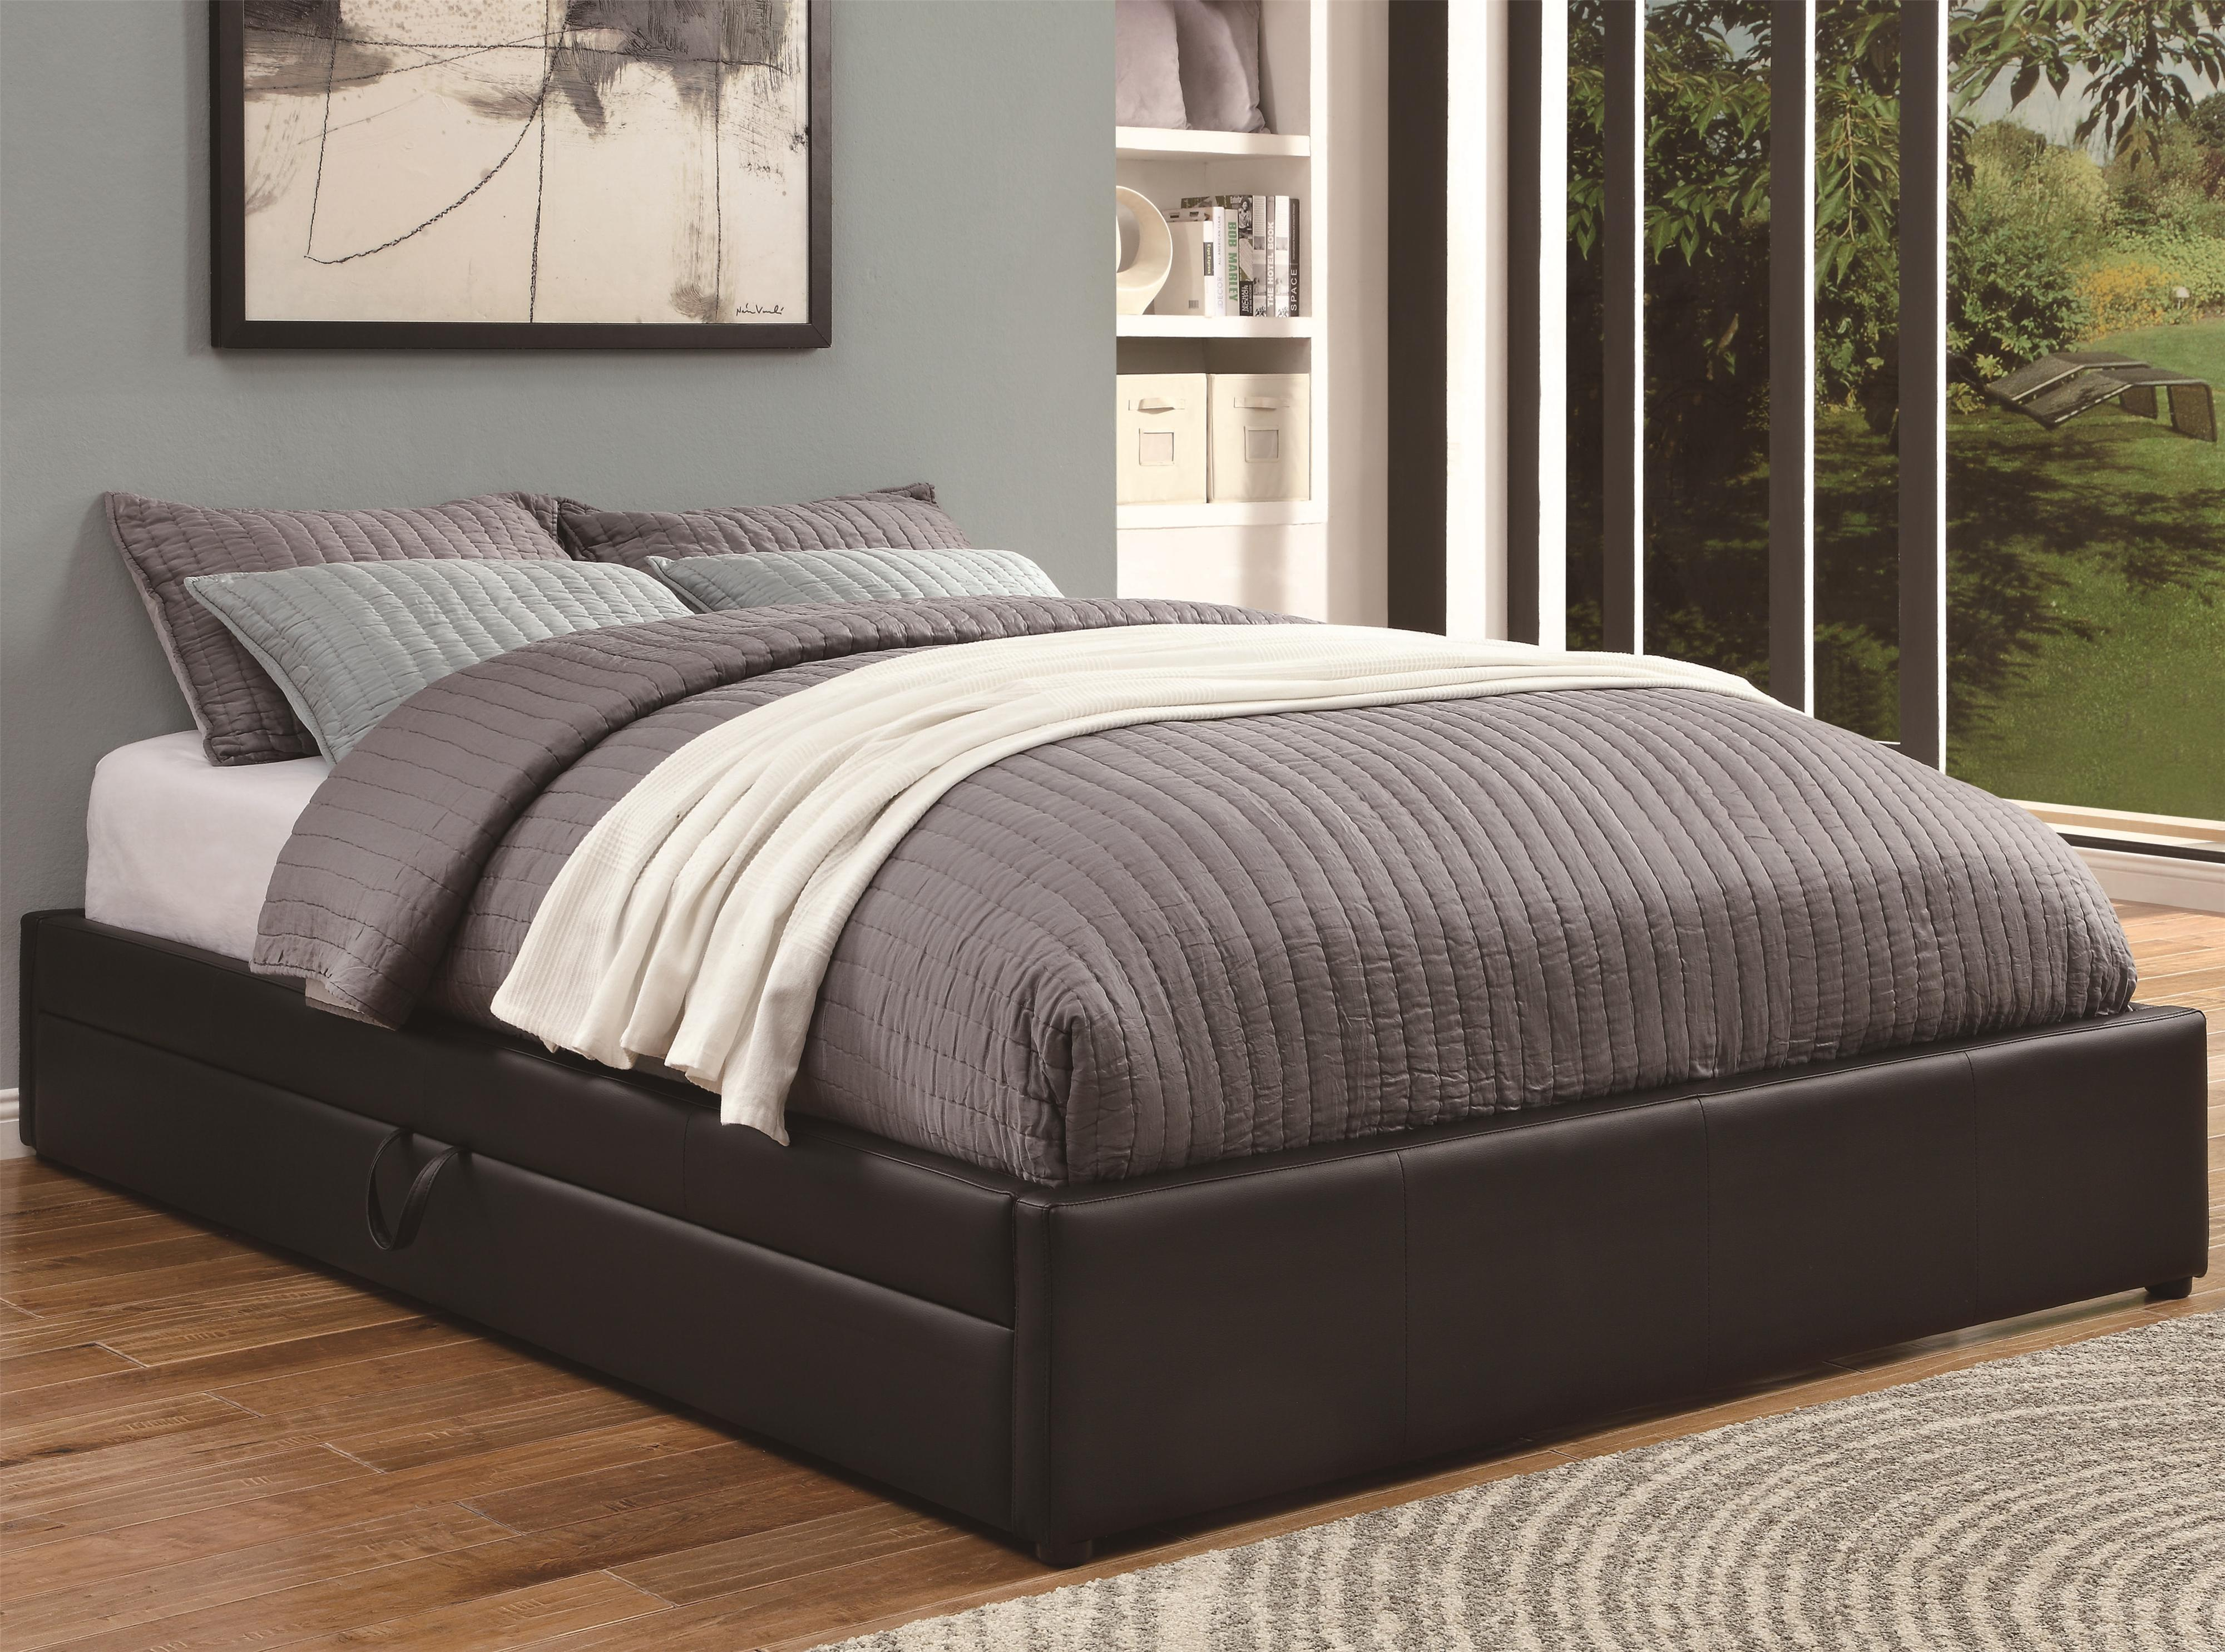 Under Bed Storage Frame Upholstered Beds Queen Storage Bed With Black Leather Like Vinyl By Coaster At Dunk Bright Furniture